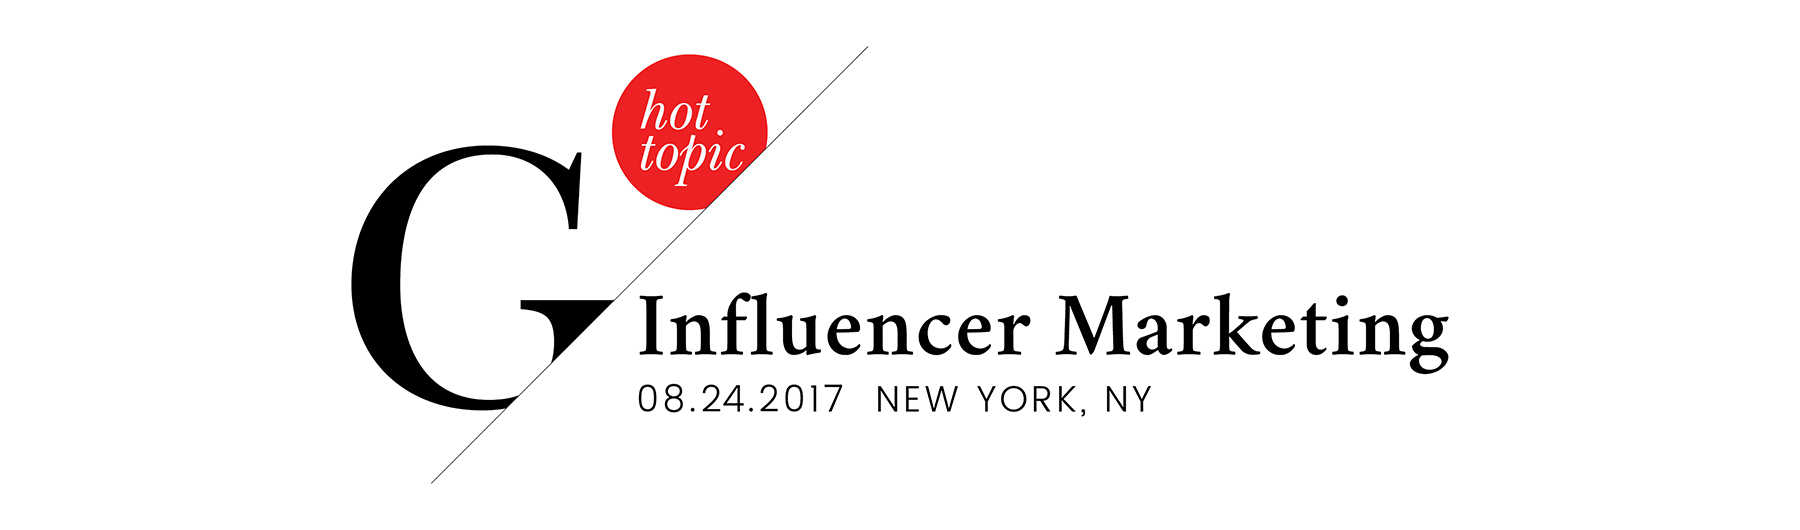 Glossy Hot Topic: Influencer Marketing August 2017